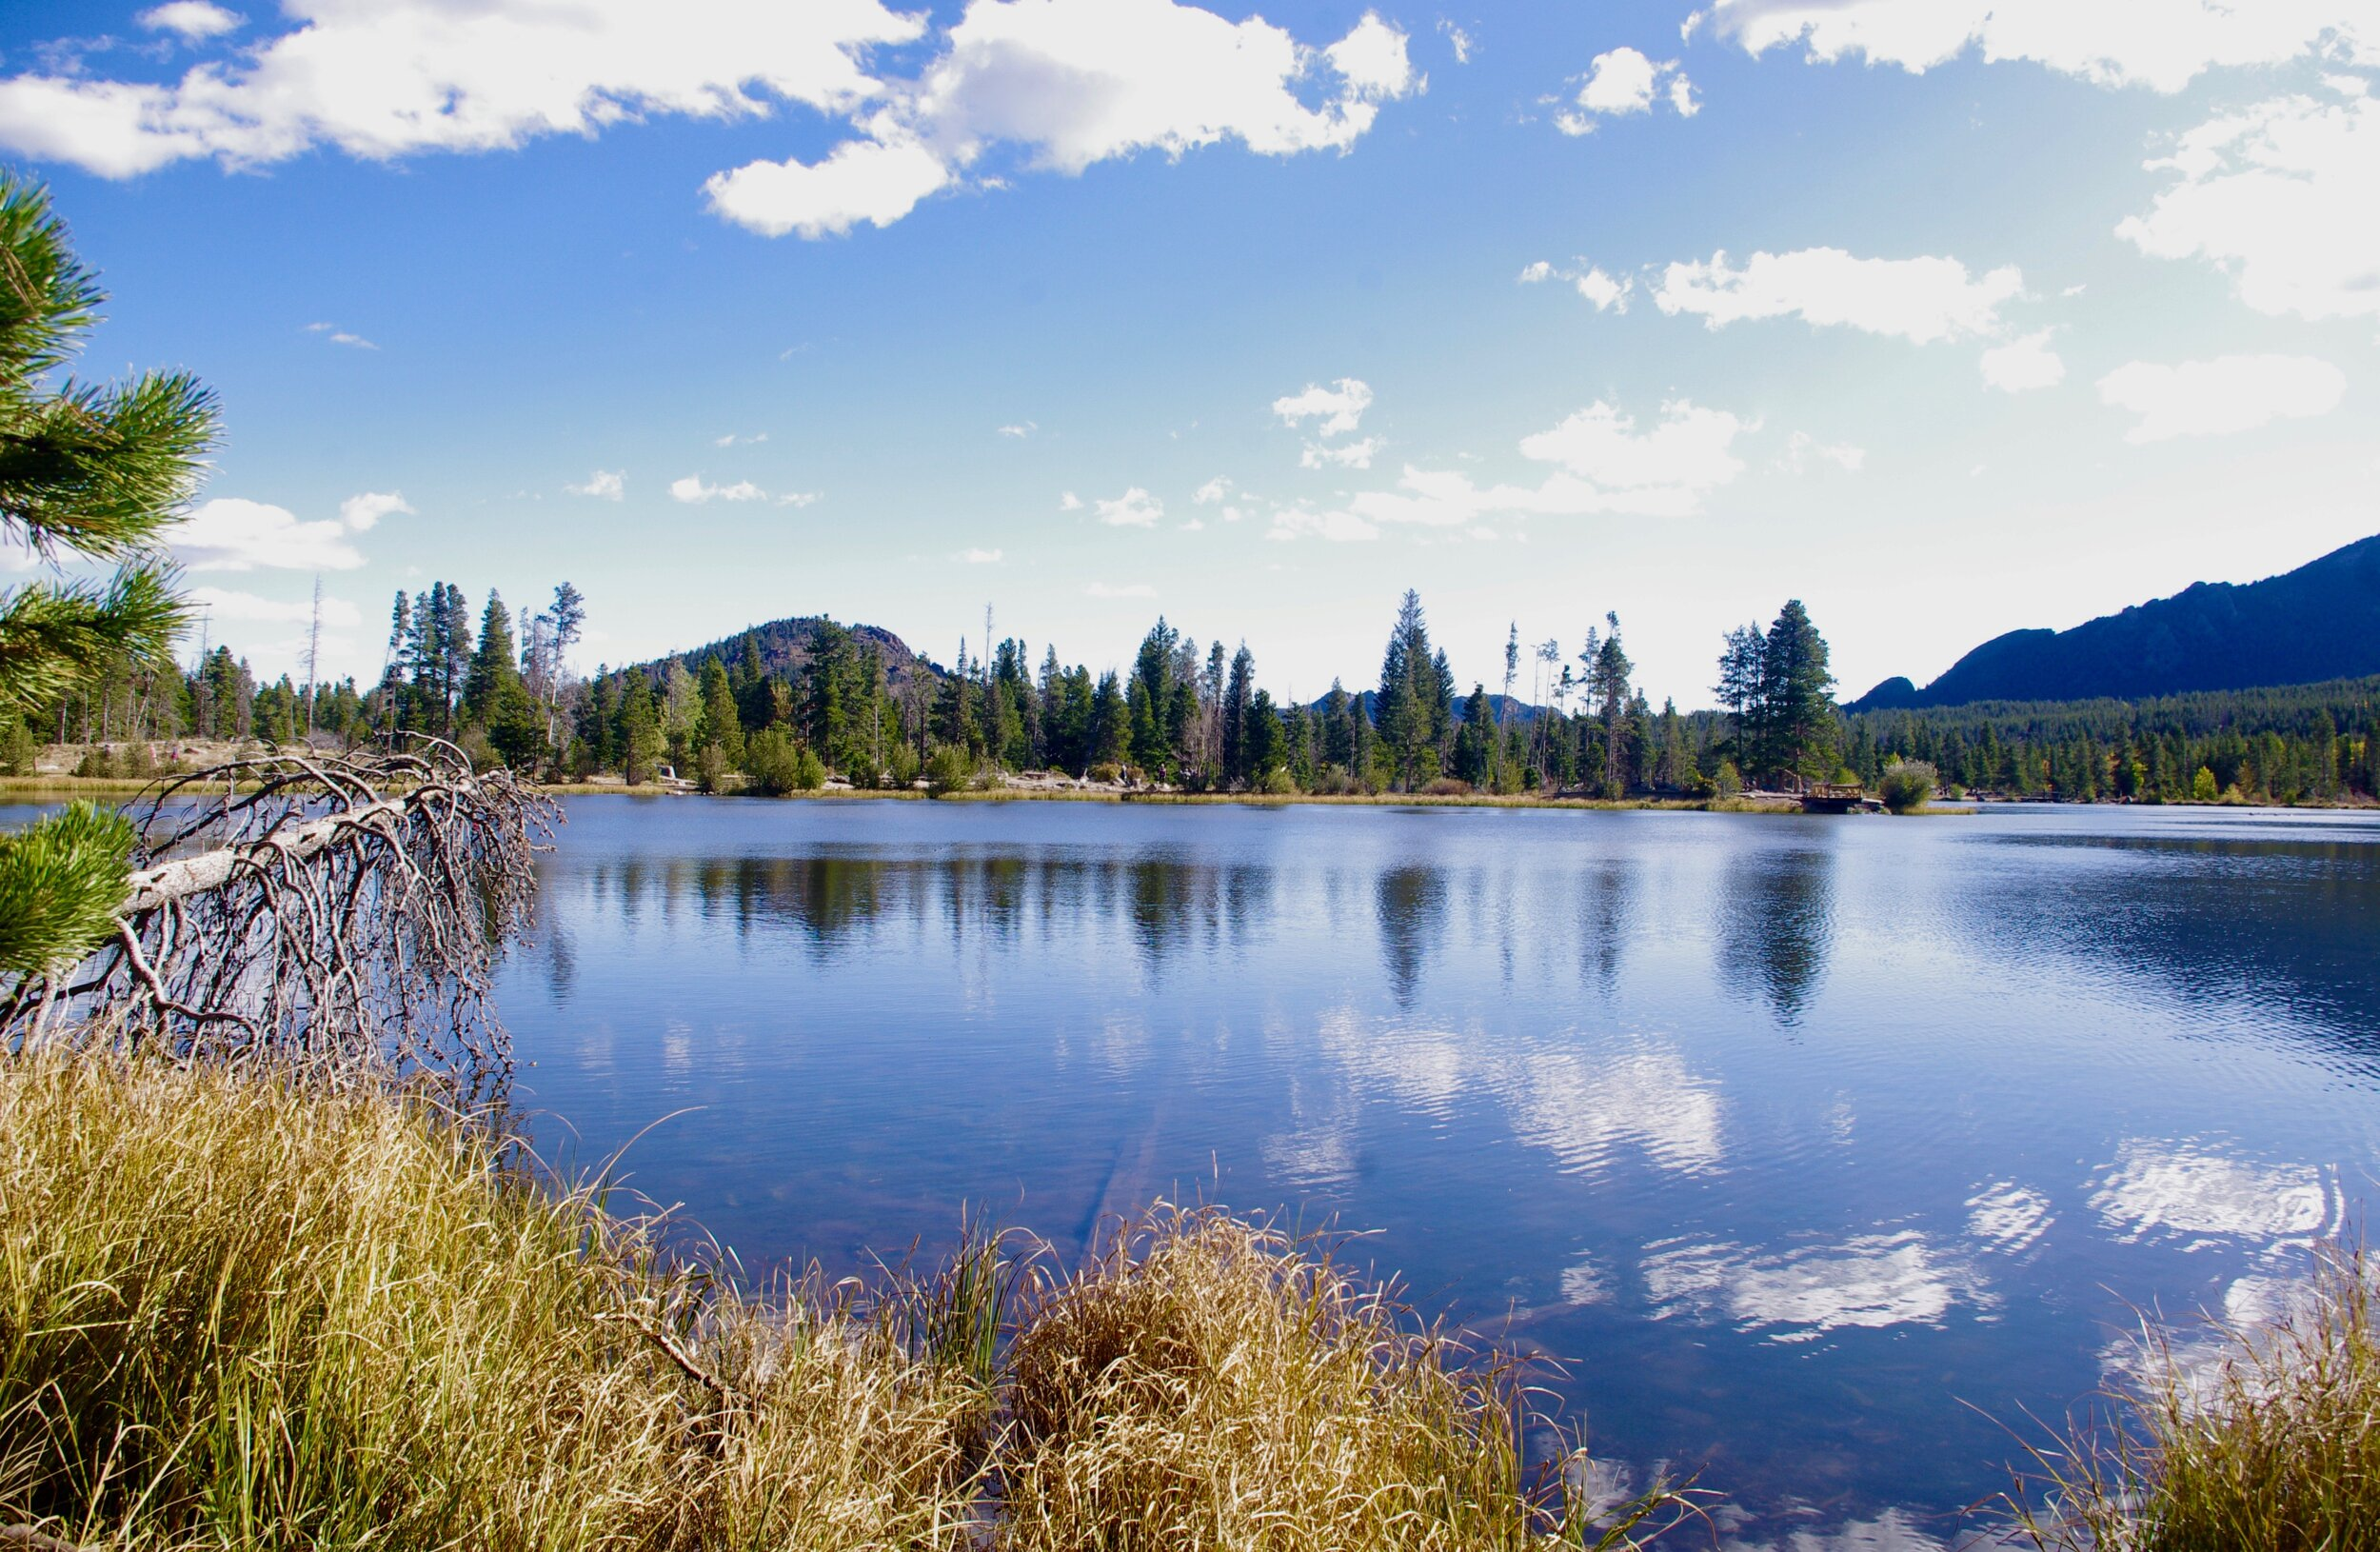 On the way to Bear Lake, I stopped at Sprague Lake, a gentle walk and some gorgeous scenery